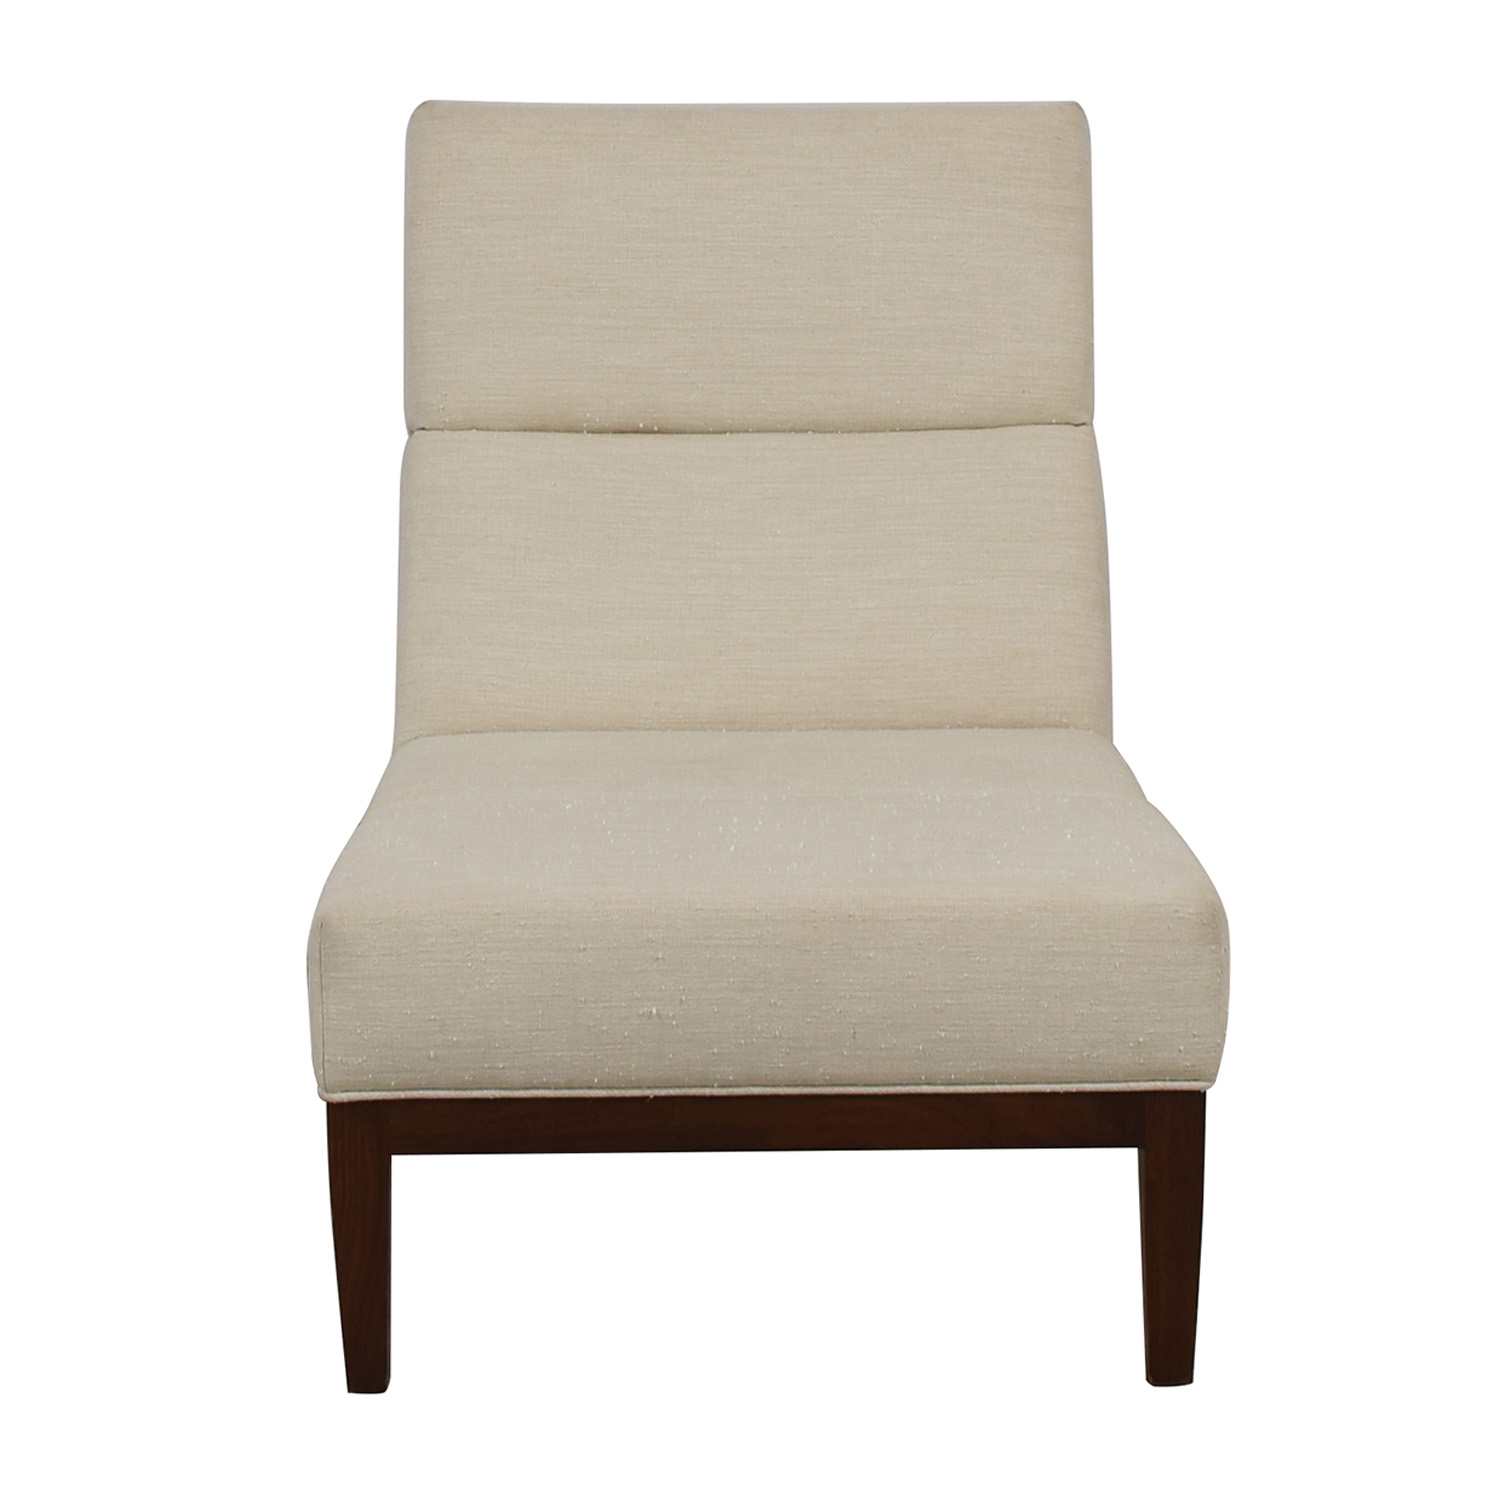 Furniture Masters Furniture Masters White Linen Accent Chair discount